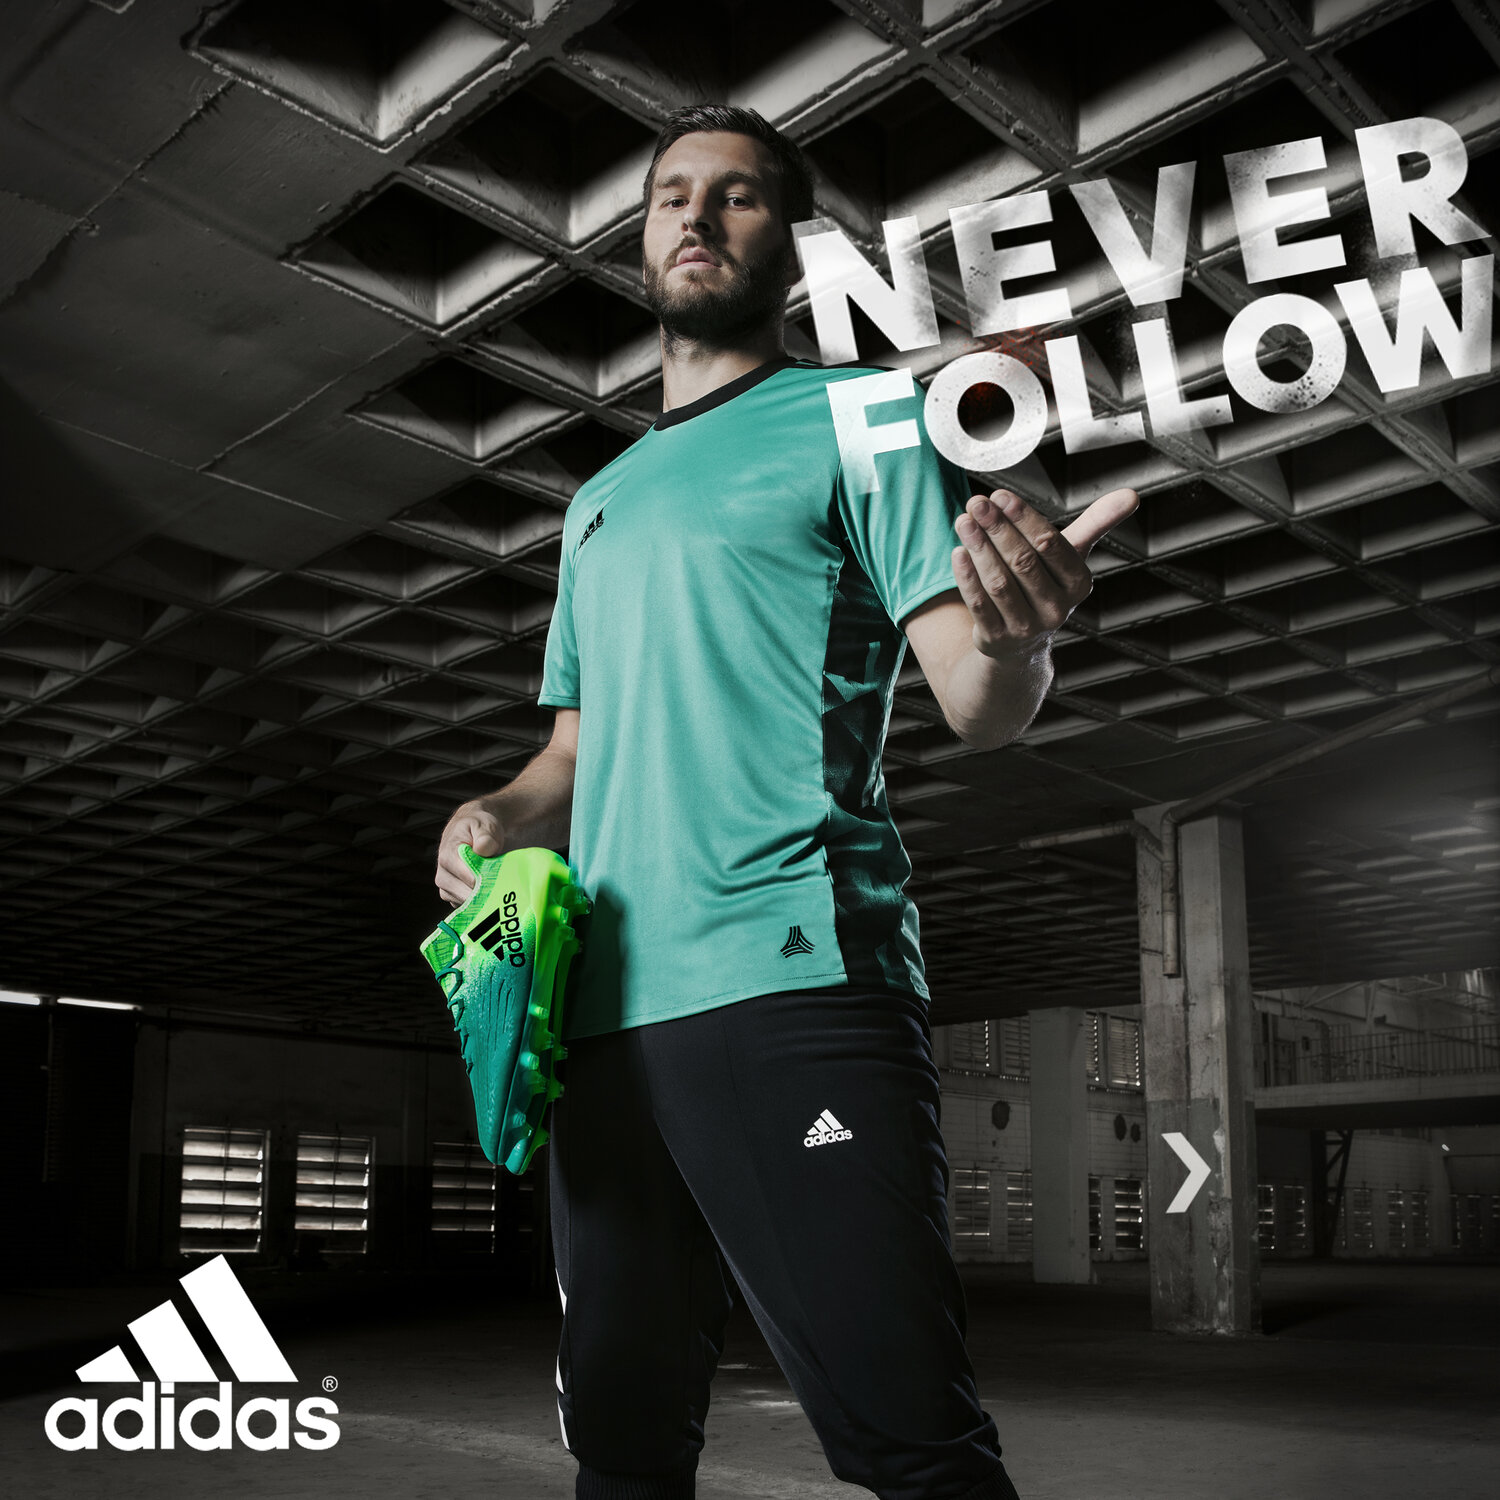 ADIDAS_NEVERFOLLOW_WGC_11